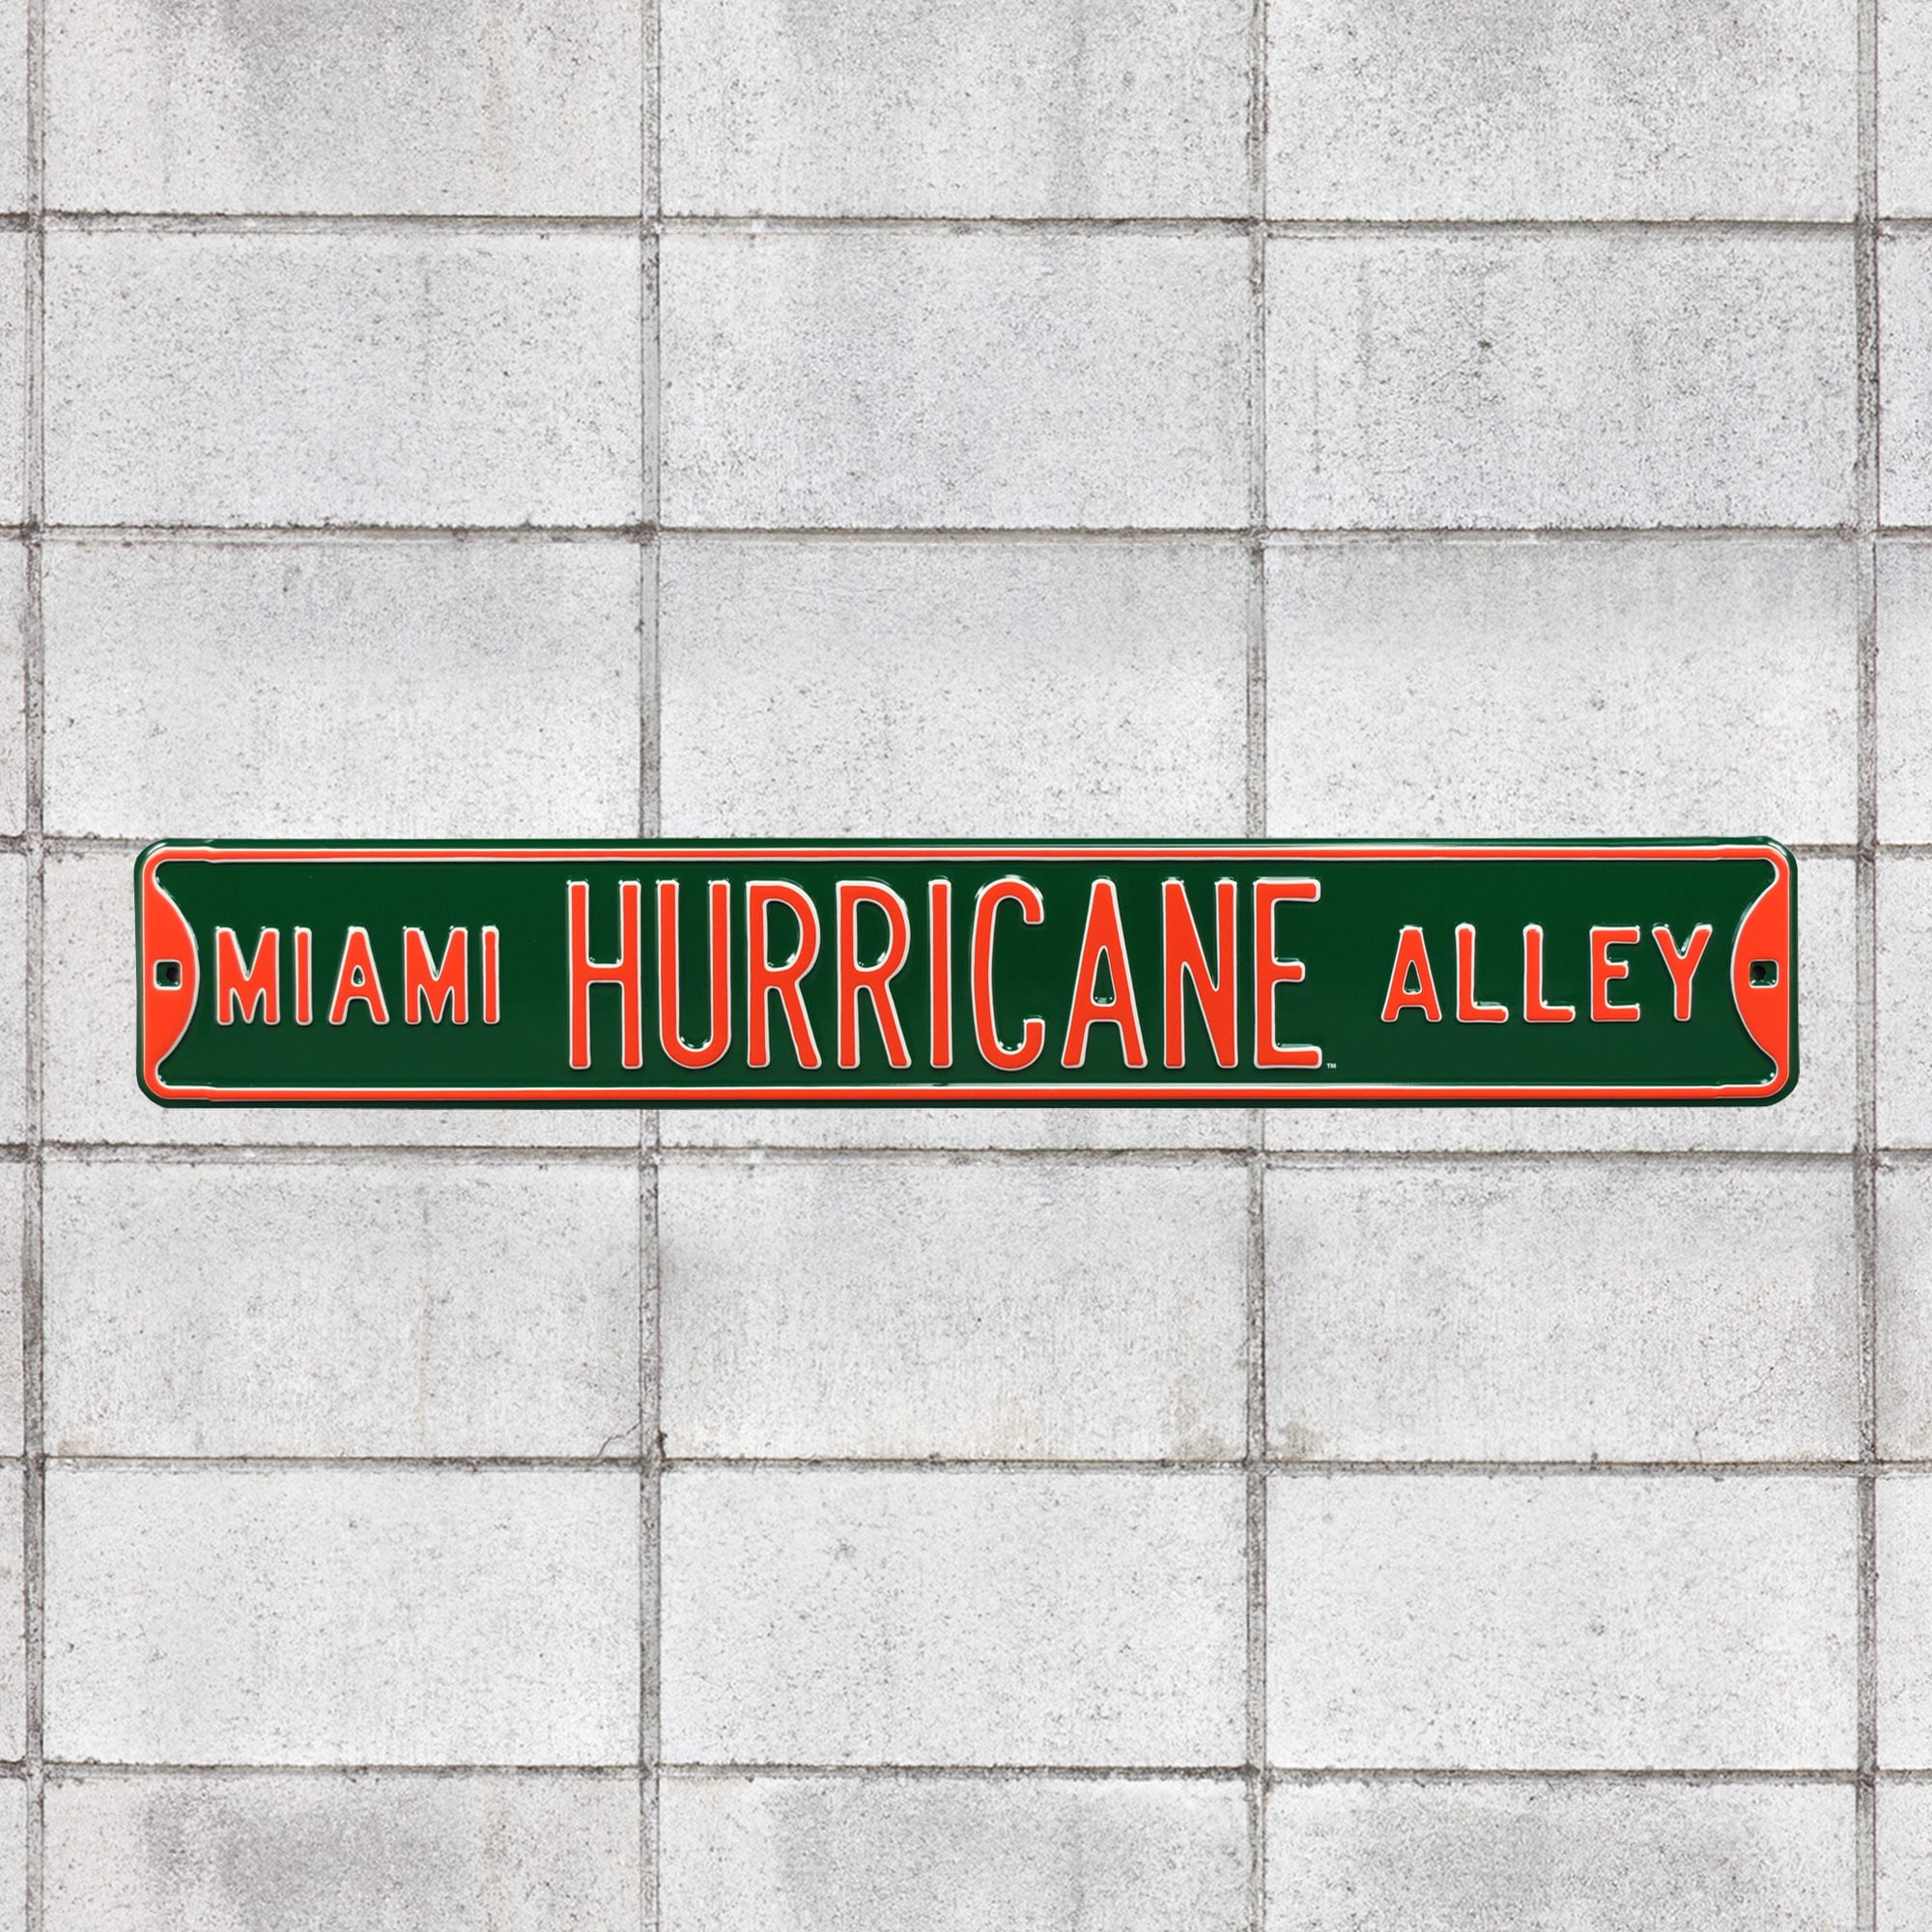 """Miami Hurricanes: Hurricane Alley Parking - Officially Licensed Metal Street Sign 36.0""""W x 6.0""""H by Fathead 